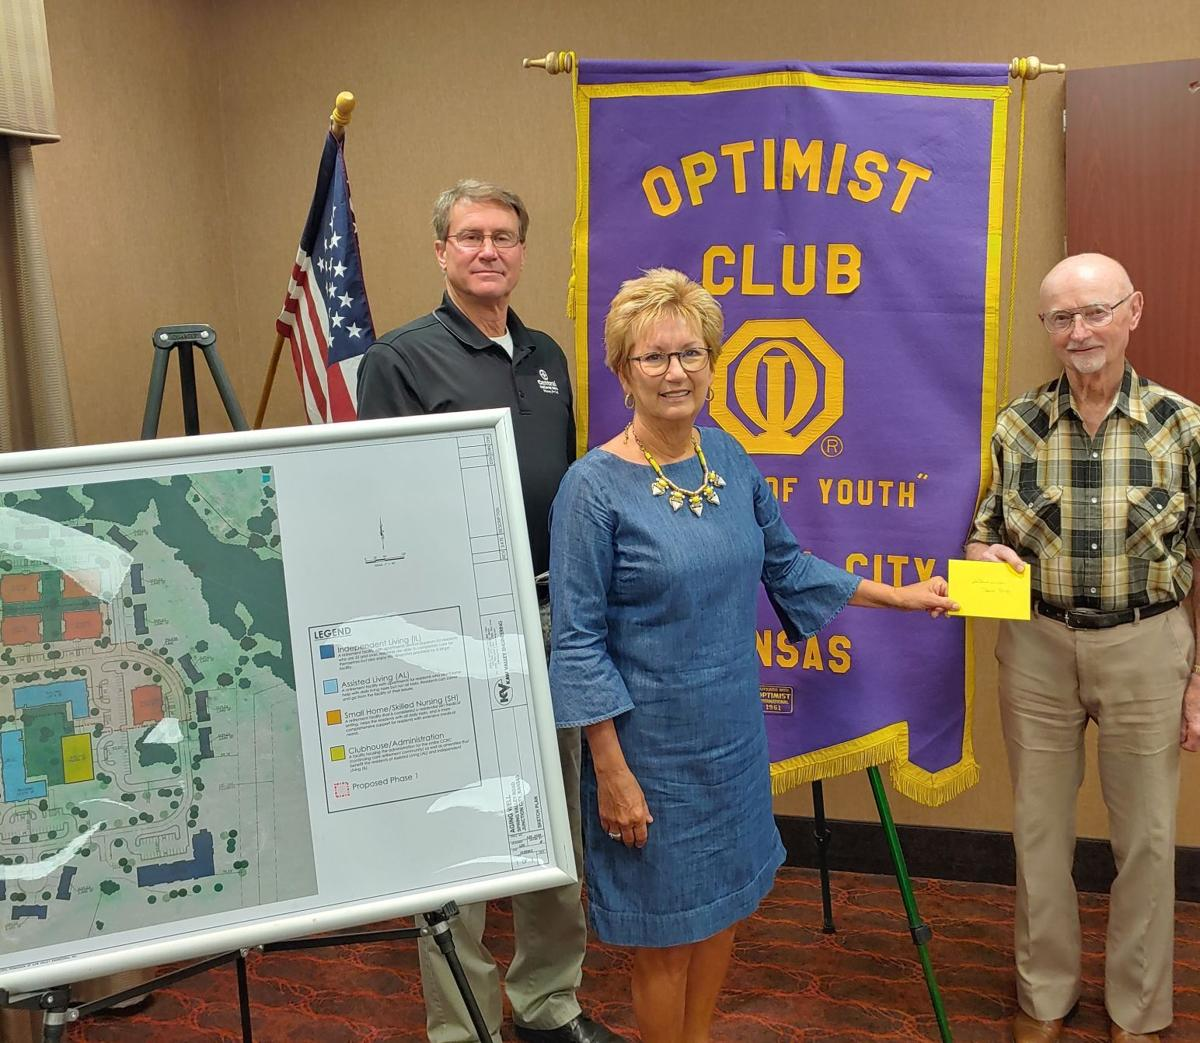 JC Breakfast Optimist Club Guest Speakers Were With The Aging Well Project